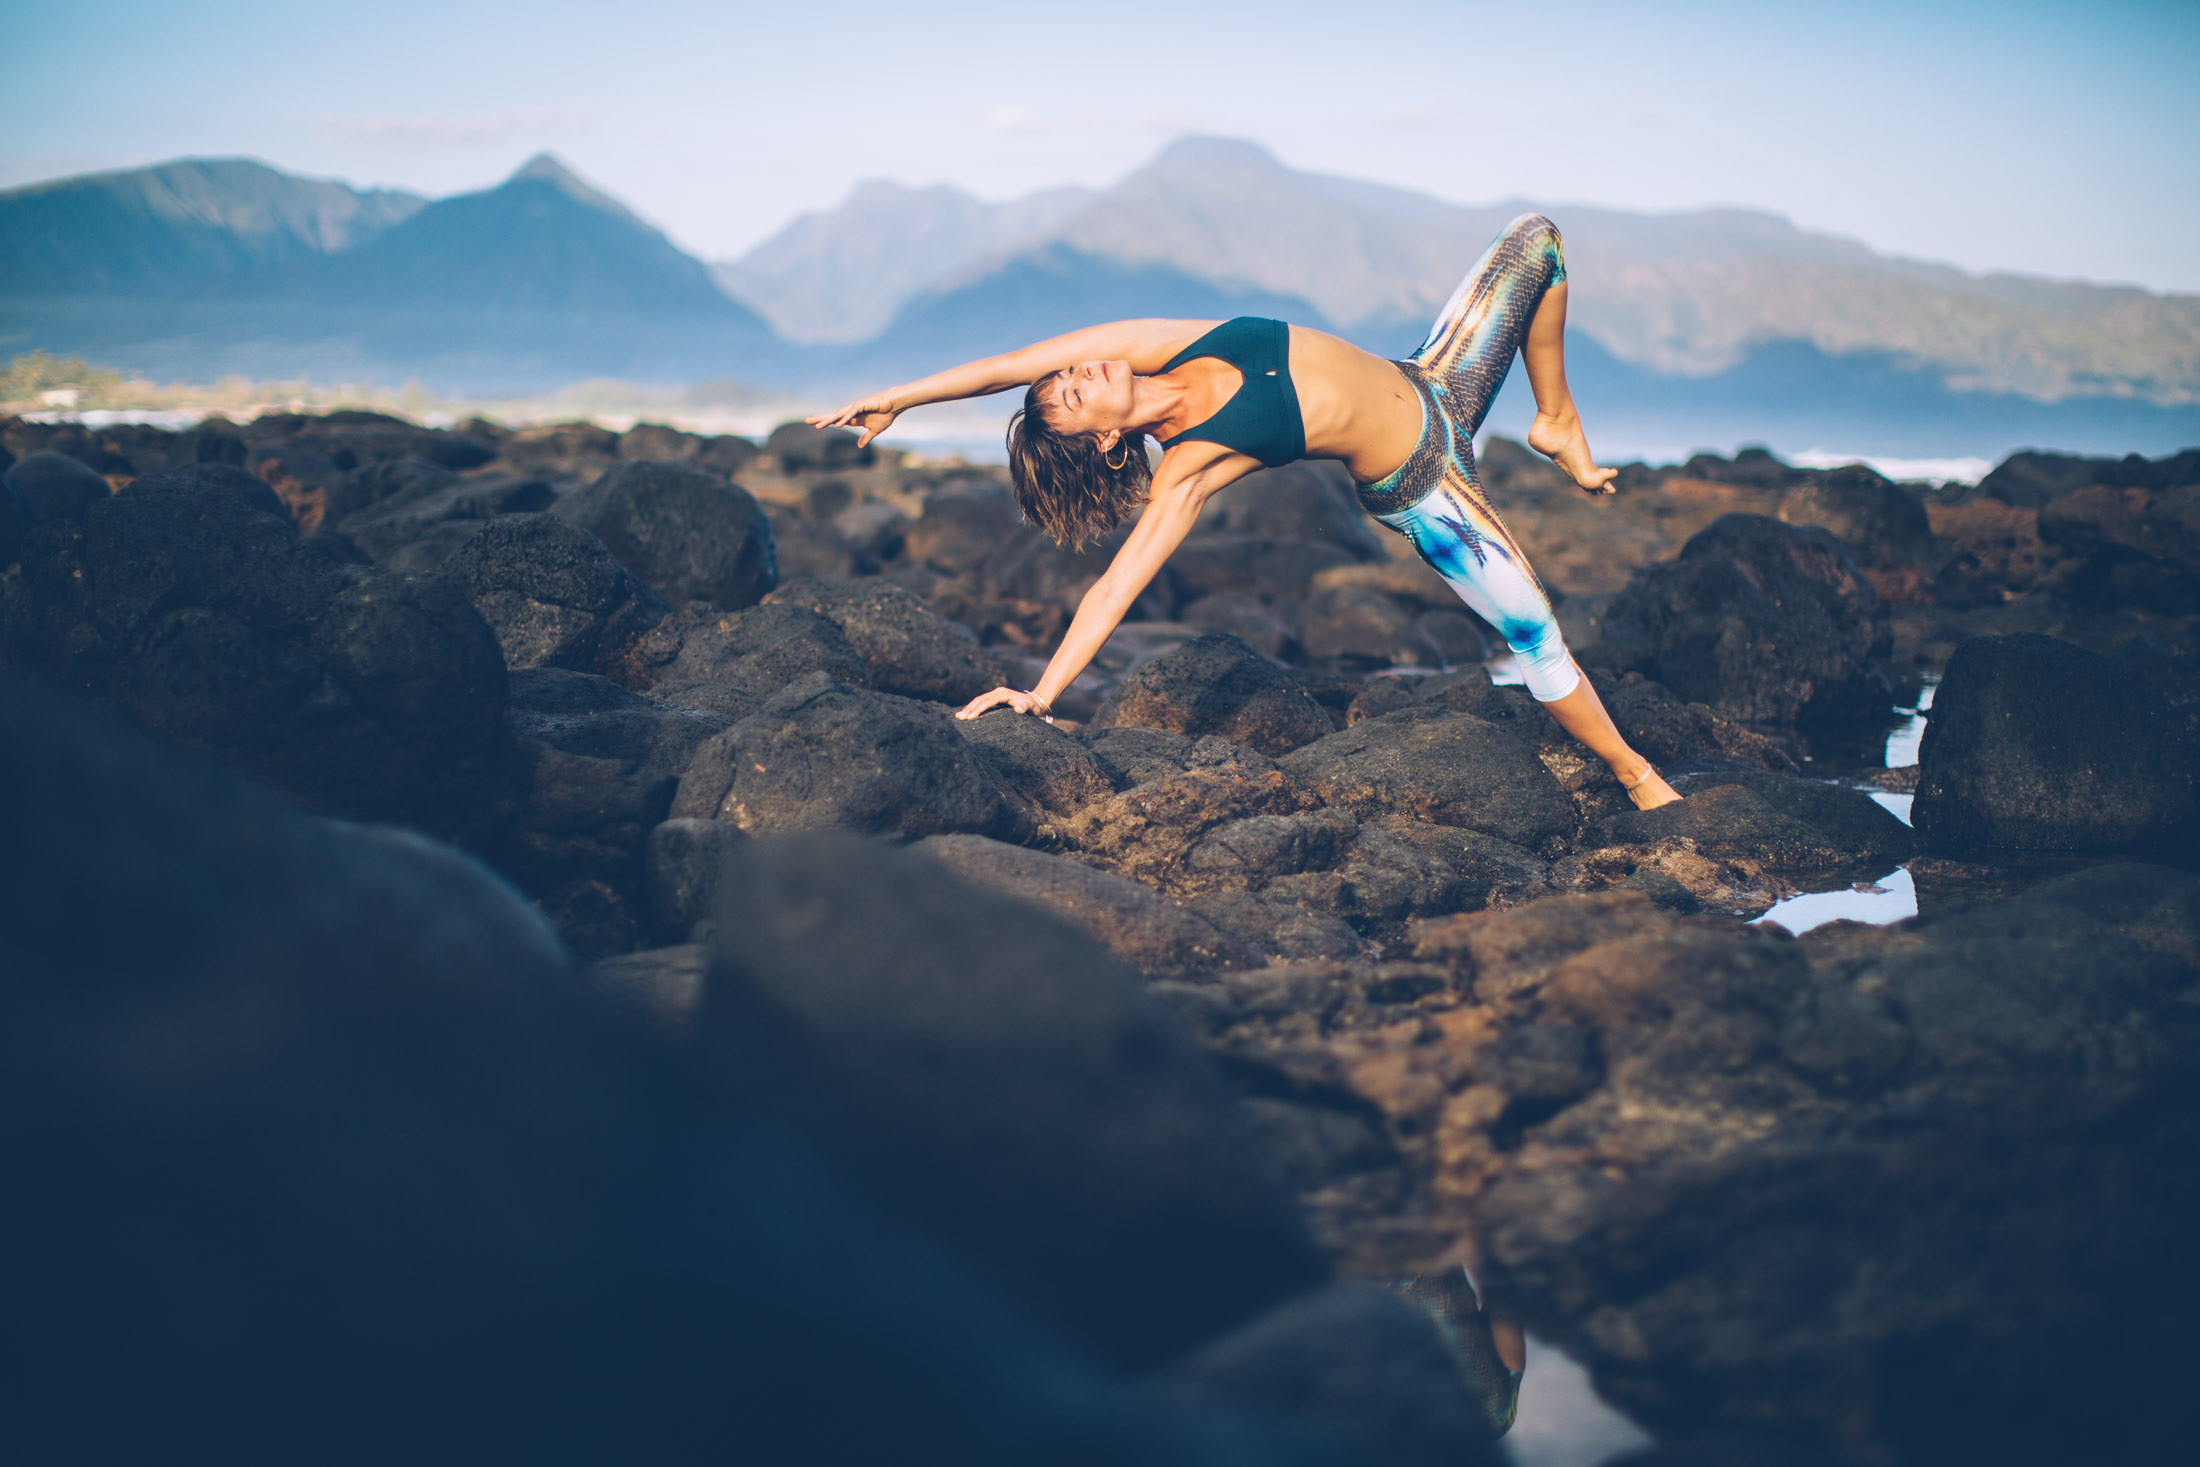 yoga photographer captures shakti sunfire on Maui